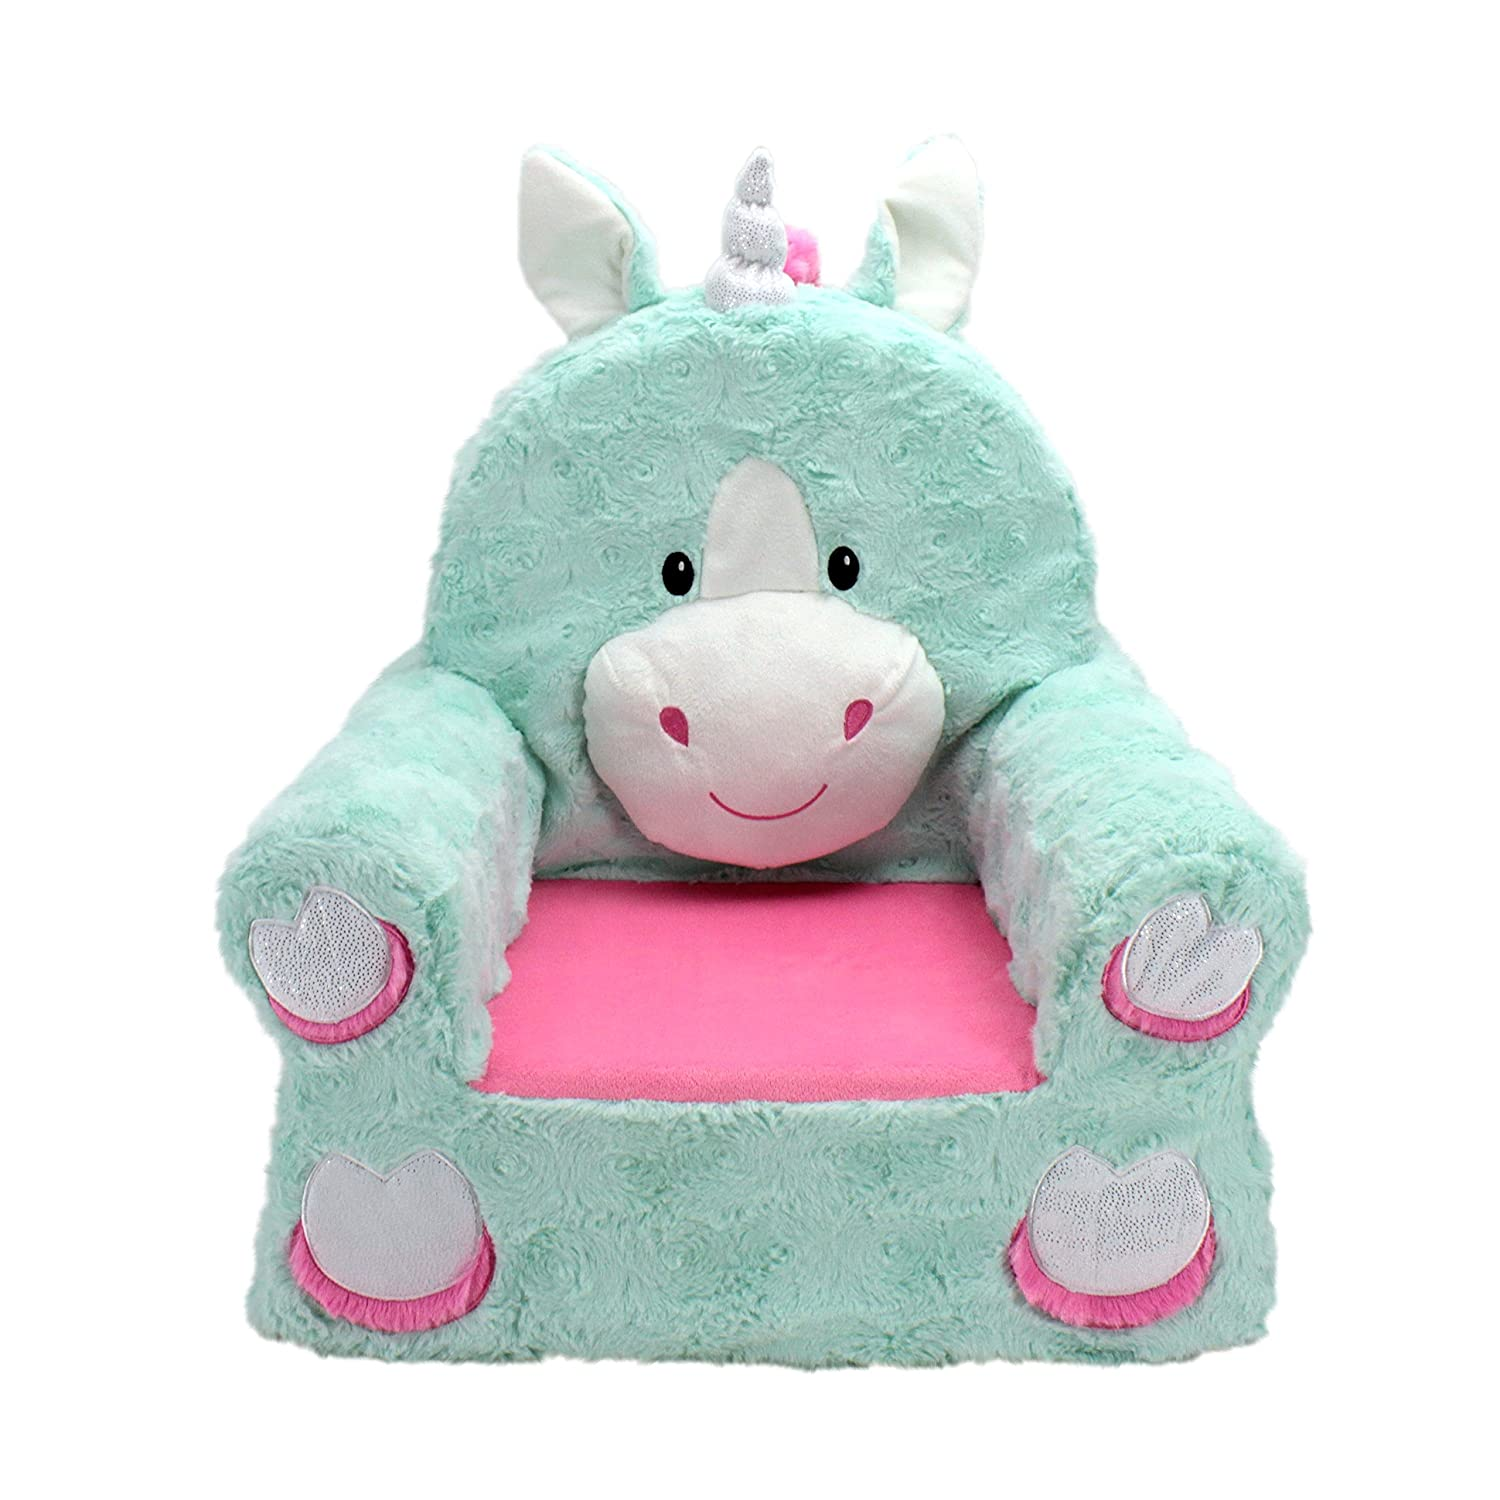 Groovy Animal Adventure Sweet Seats Character Chair Teal Unicorn Pabps2019 Chair Design Images Pabps2019Com